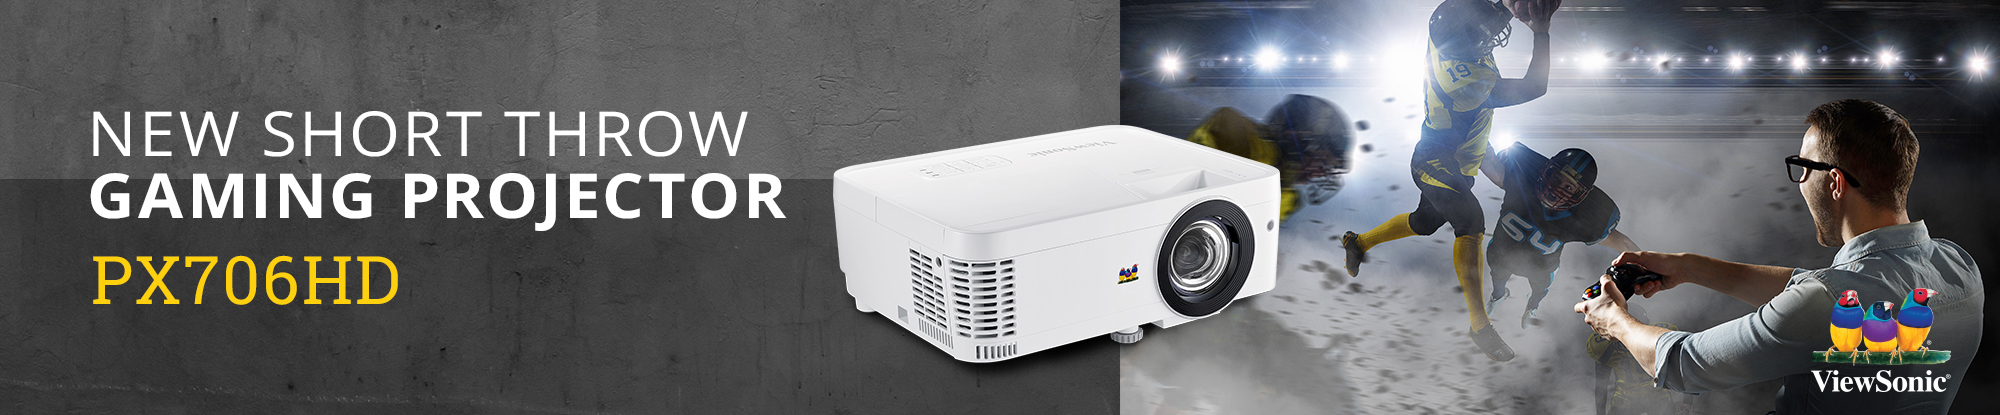 ViewSonic Introduces Budget Conscious Gaming Projectors for Immersive, Big-Screen Experiences